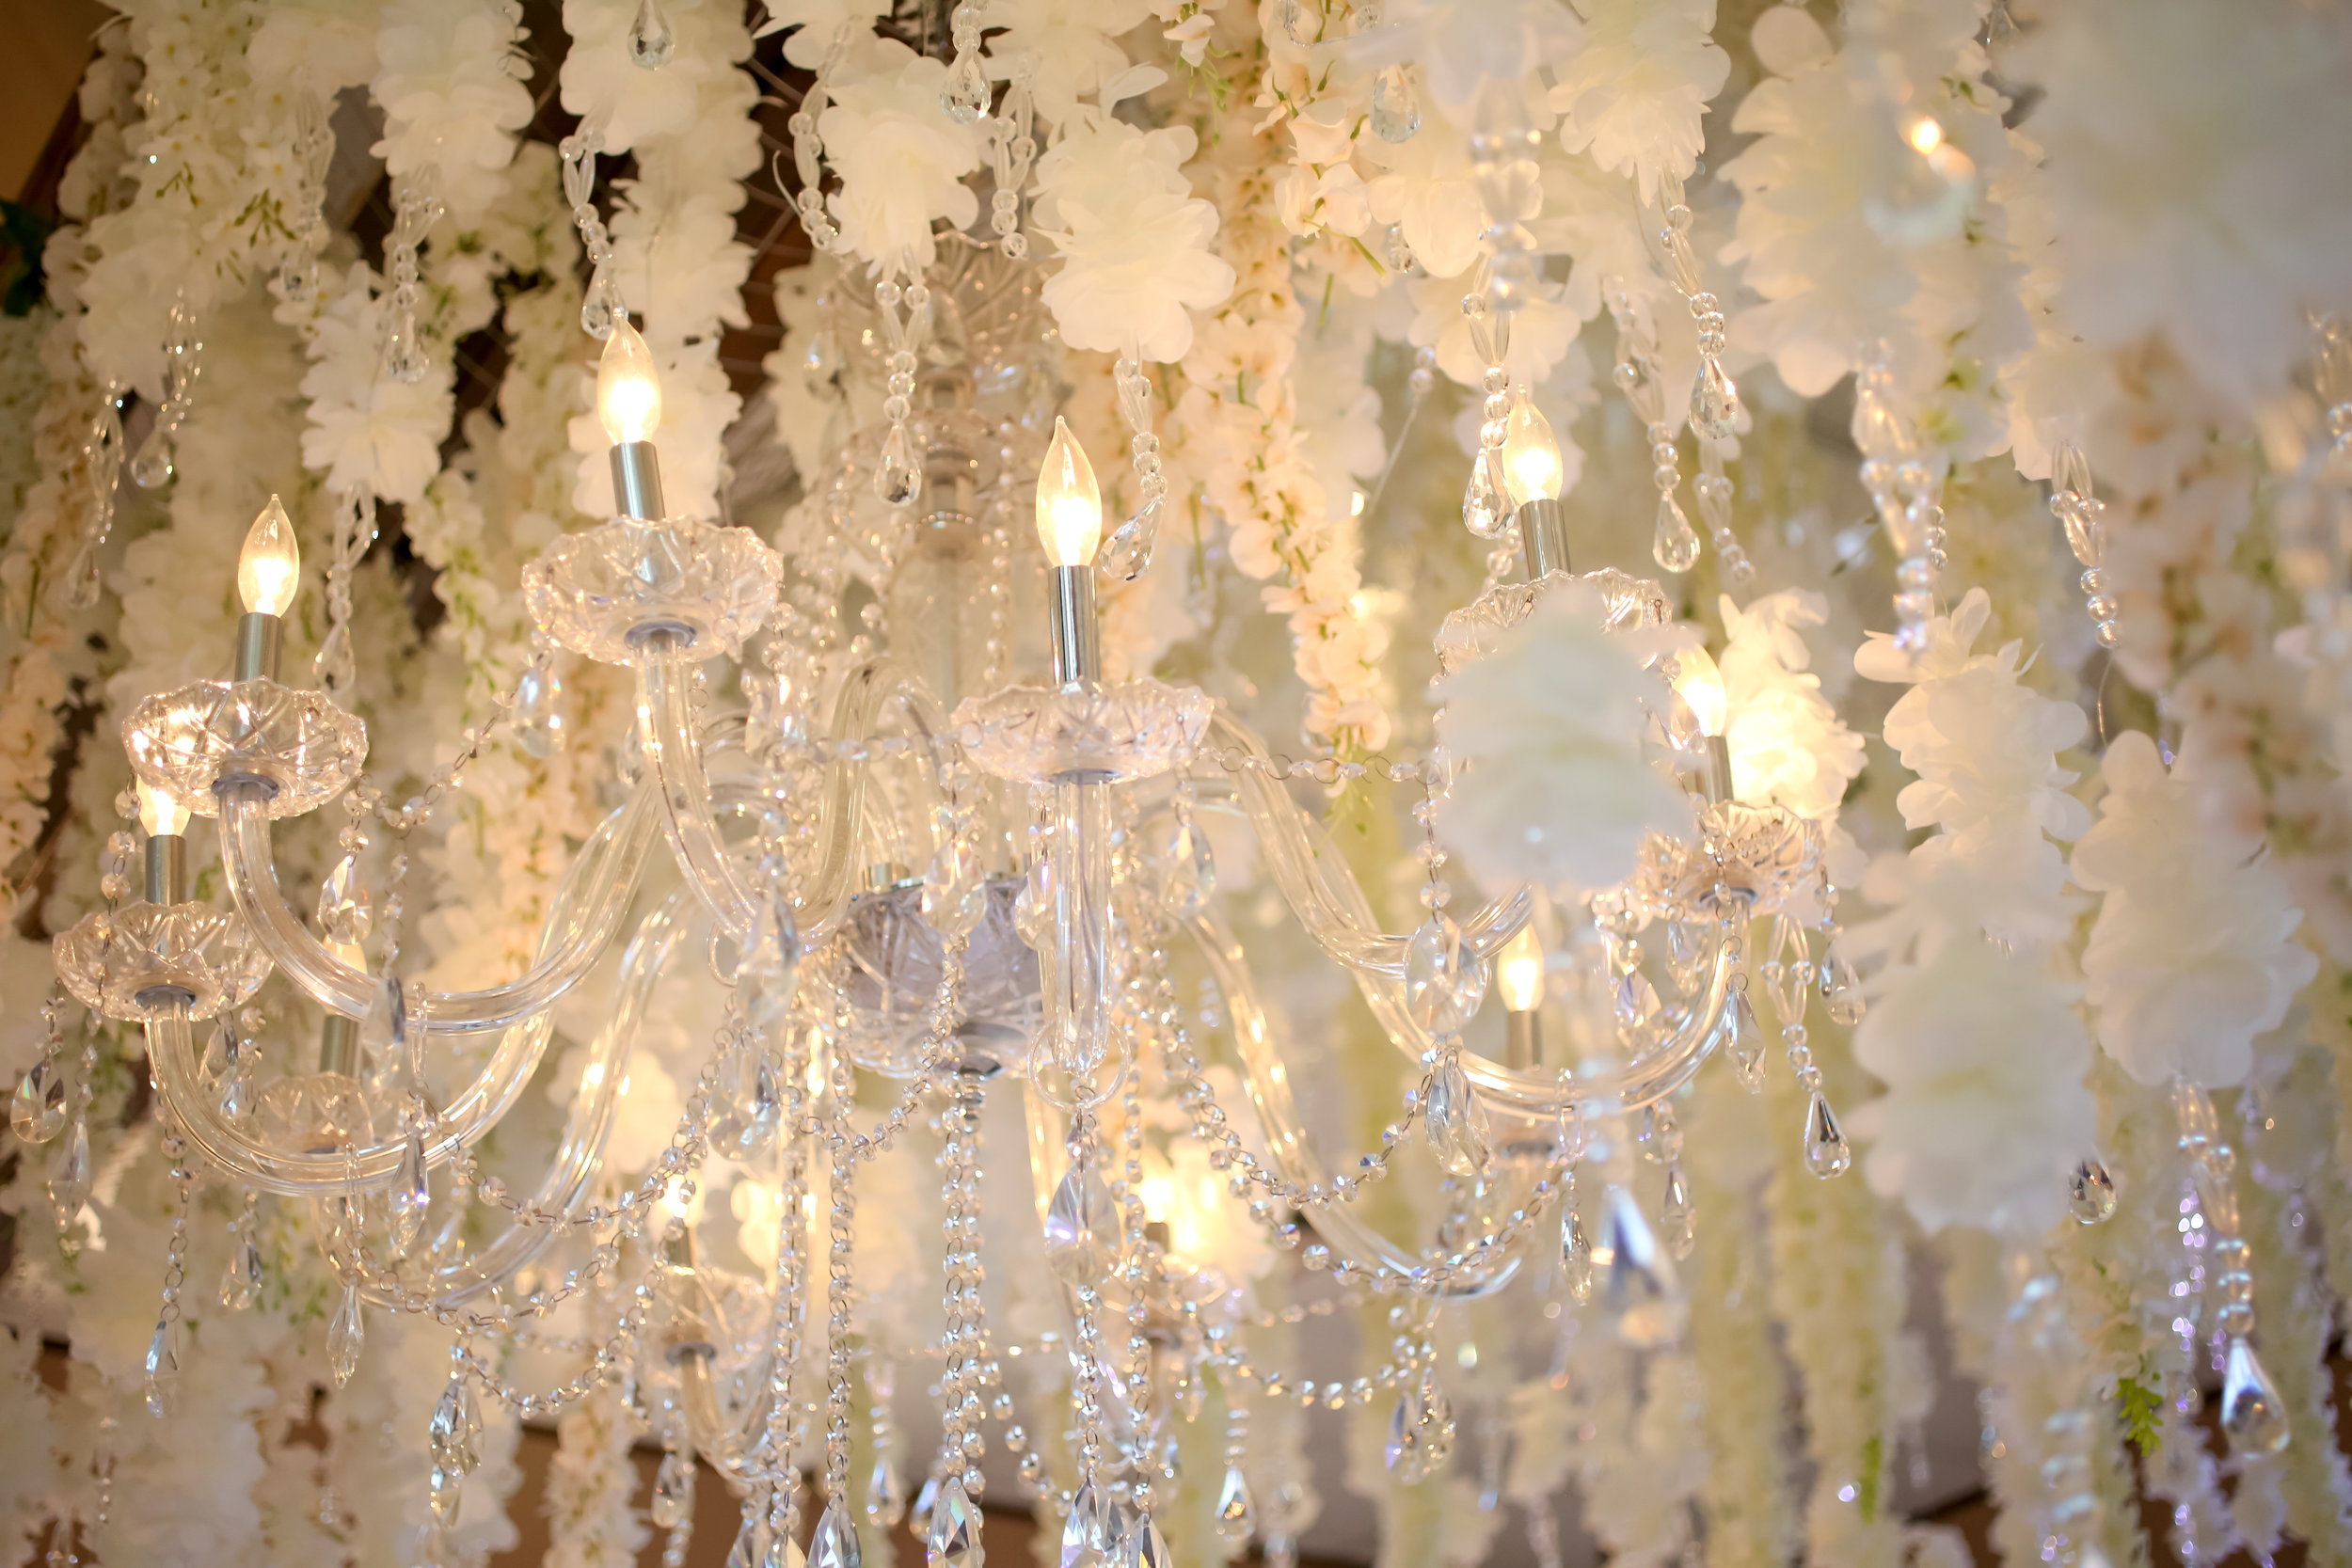 Crystal chandeliers were tucked among the flora cascading from the ceiling.